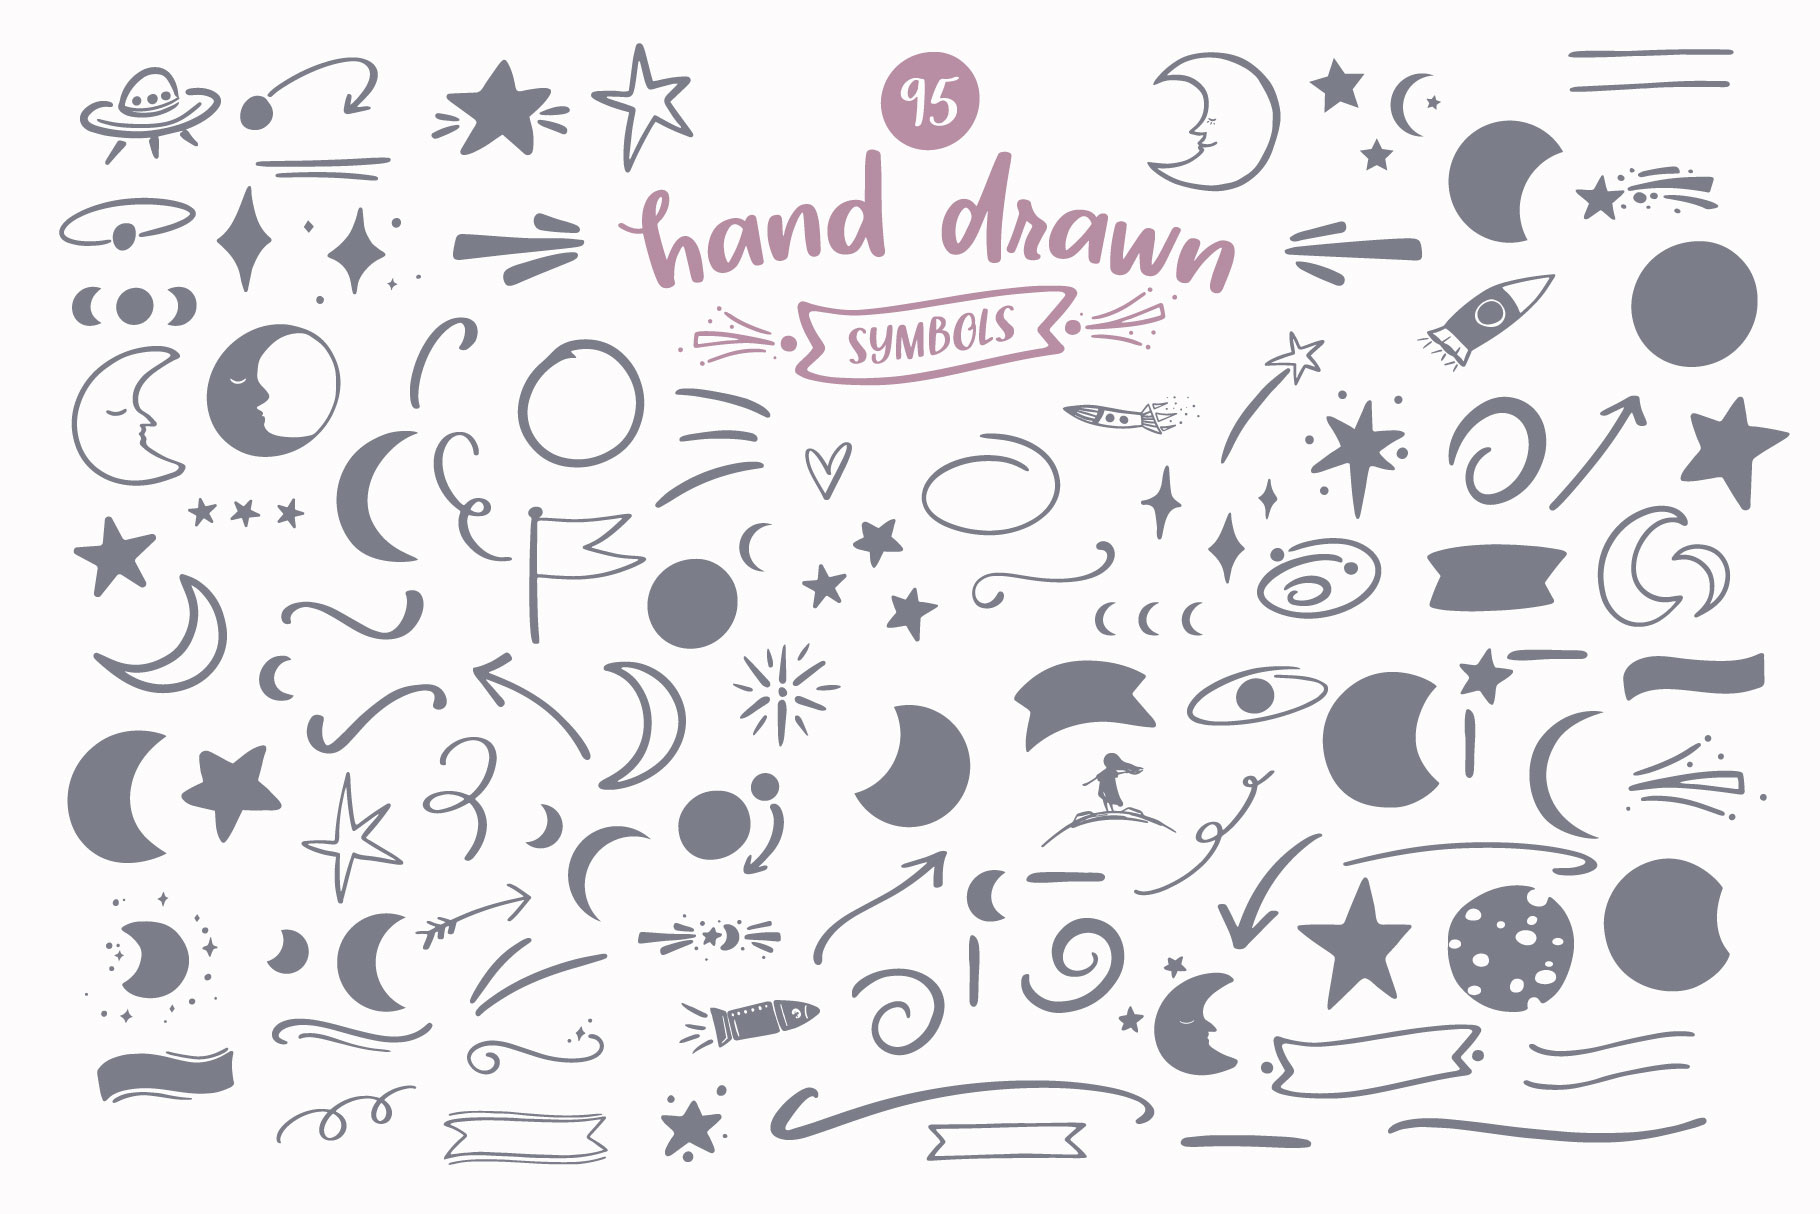 95 hand drawn symbols with font Midnight Moon, galaxy and stars graphics